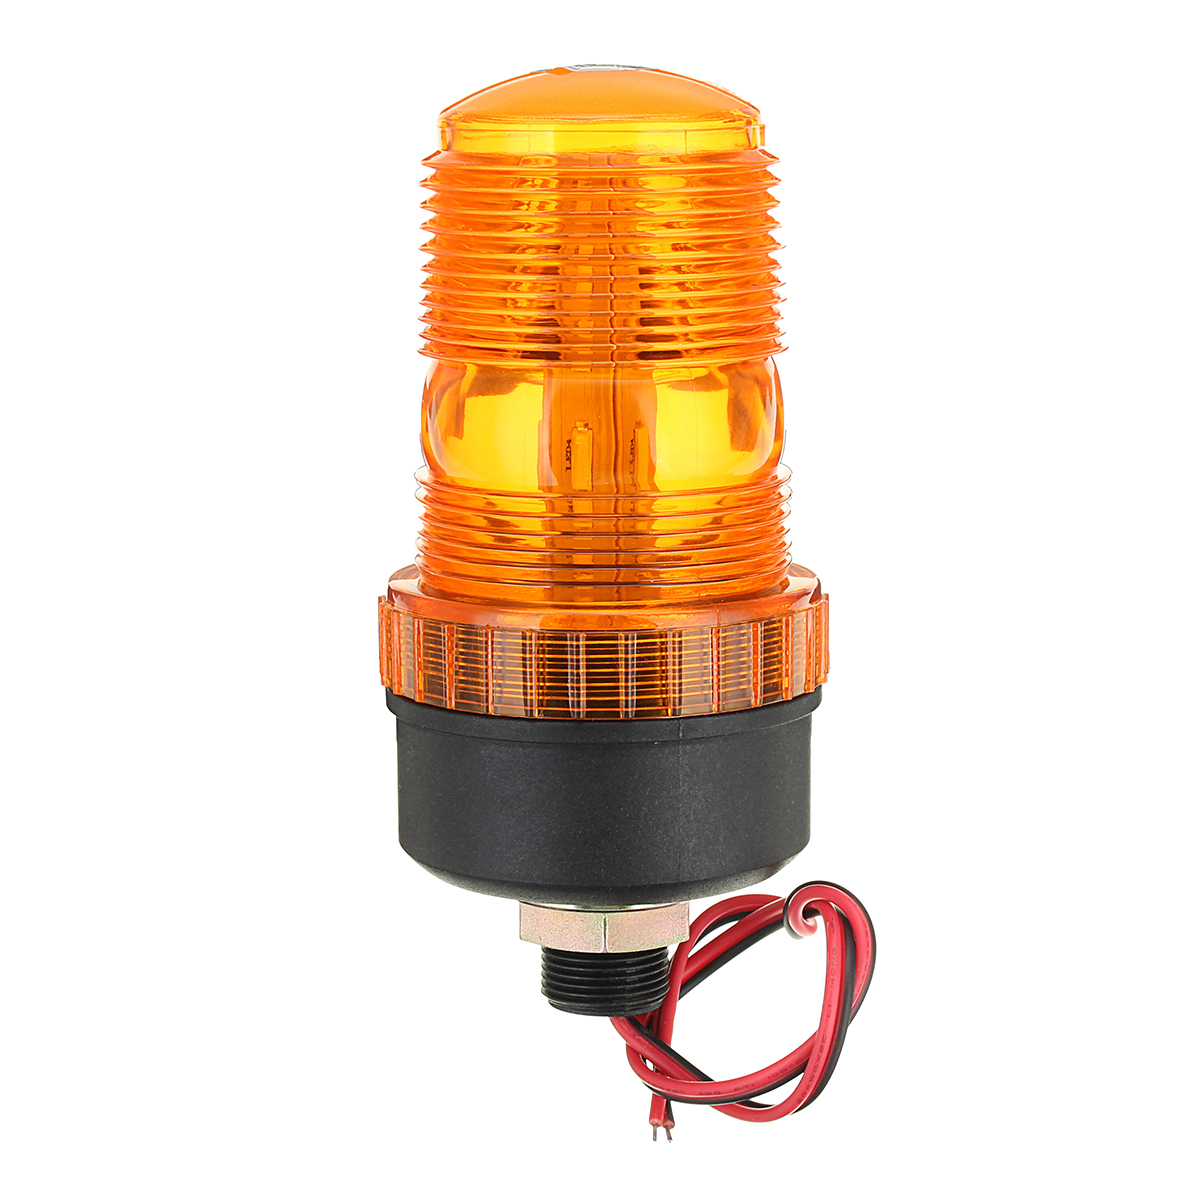 все цены на 12V 24V LED Rotating Flashing Amber Beacon Flexible Strobe Tractor Warning Light Traffic Light Roadway Safety онлайн